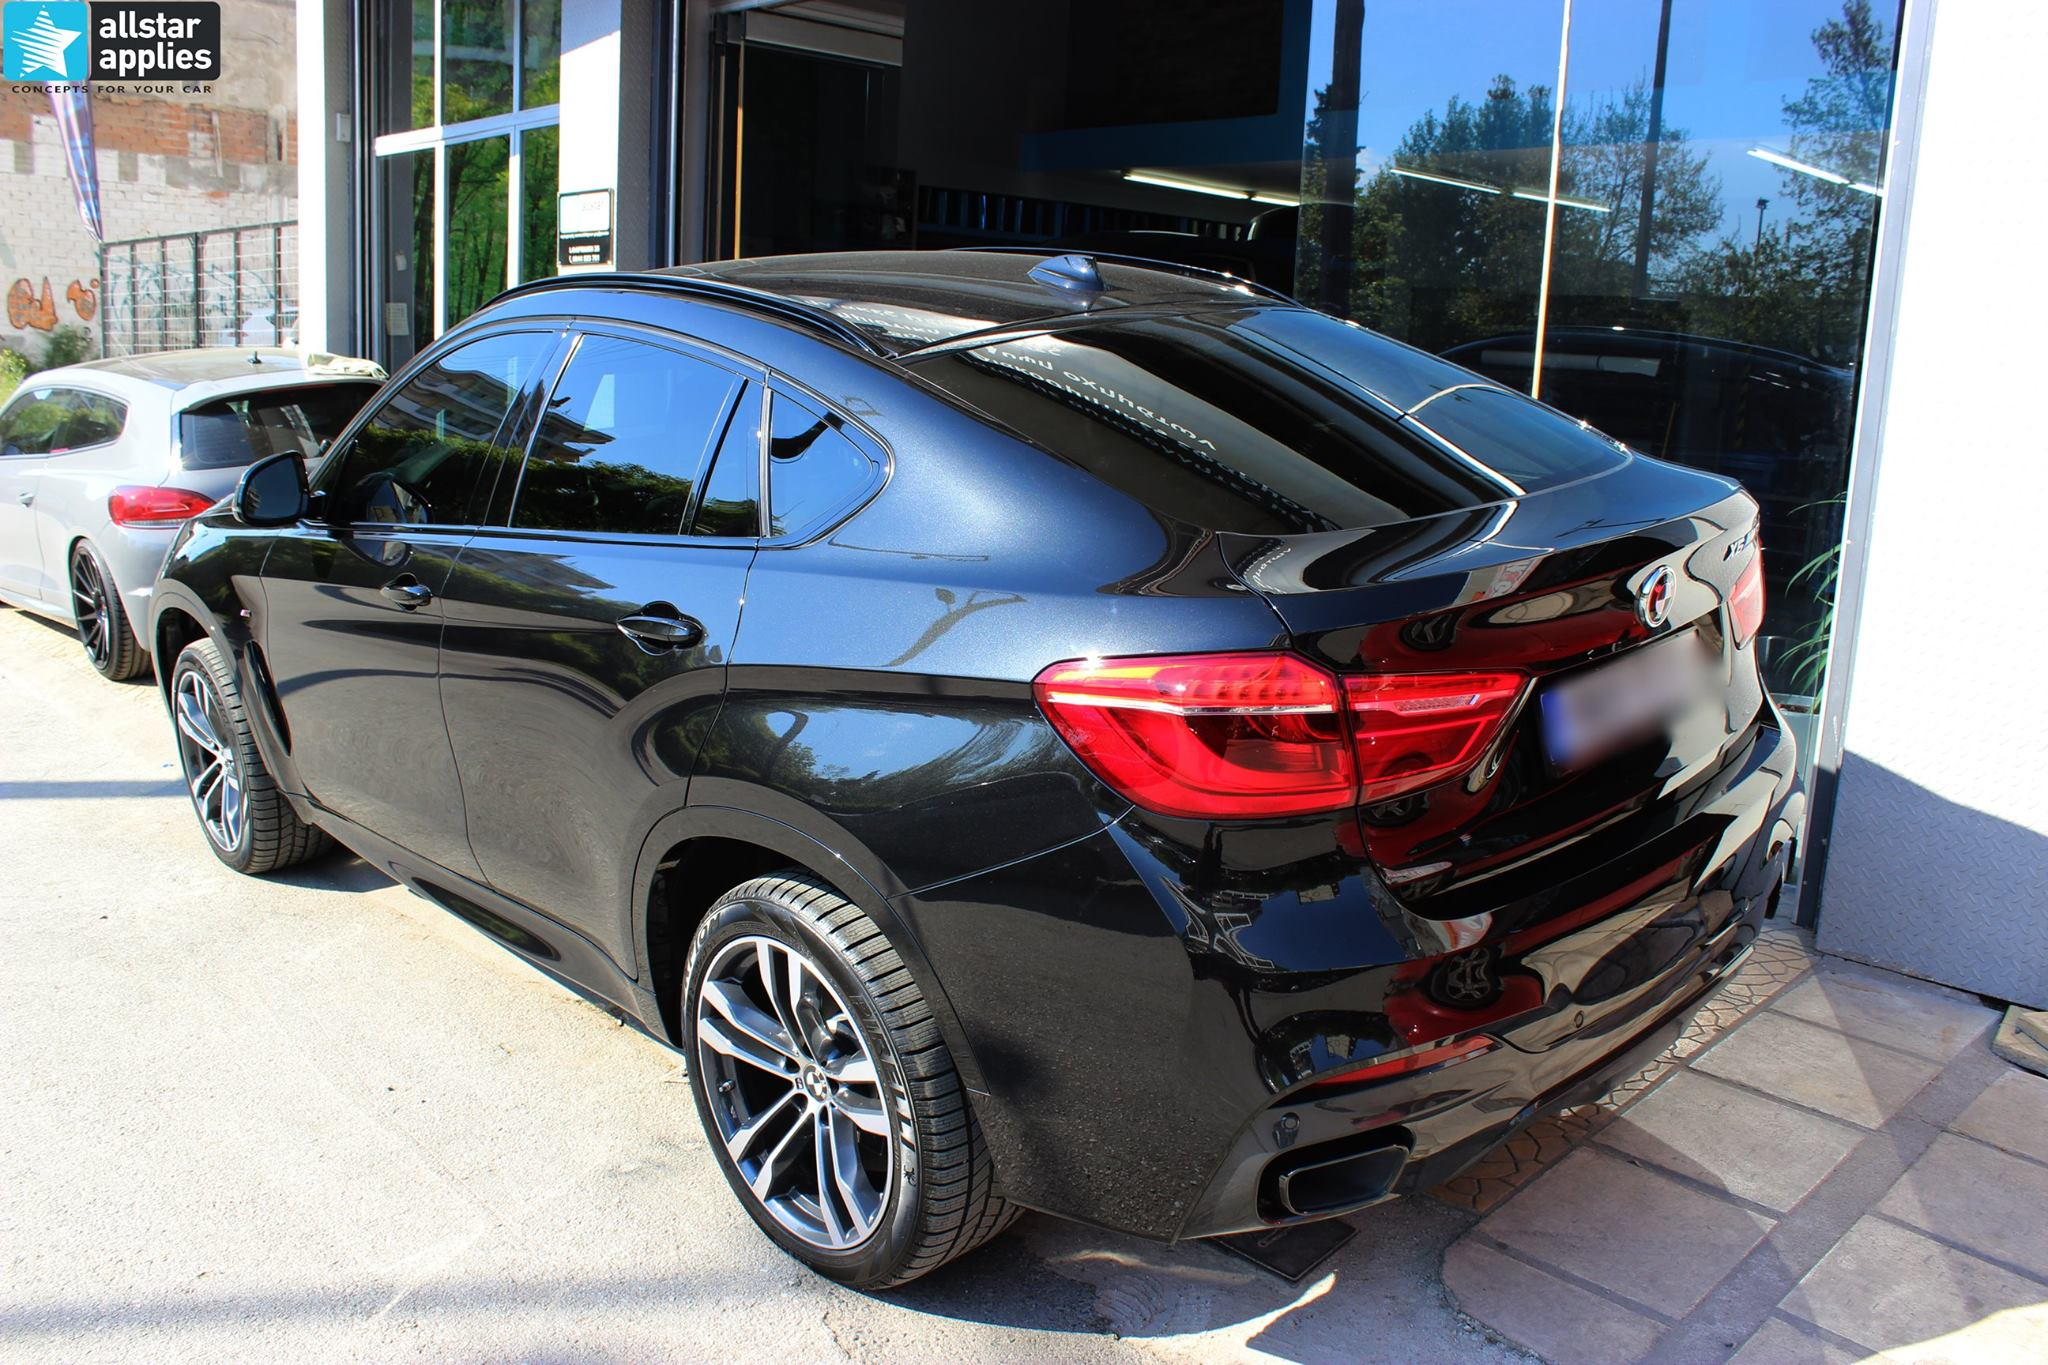 BMW X6 Μ50 - Full Paint Protection Film (17)